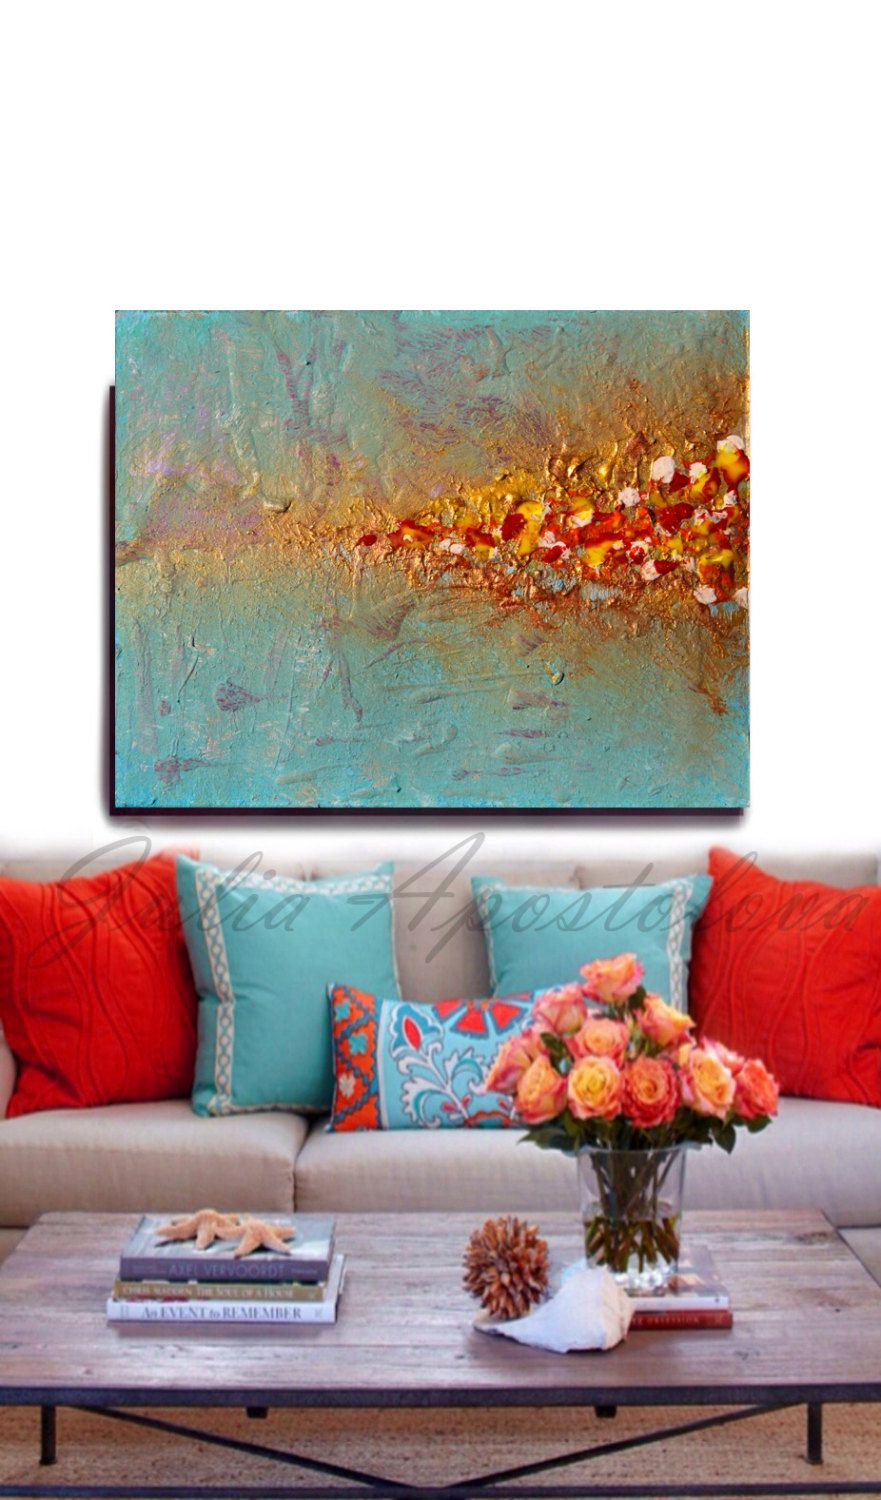 Beach decor wall art modern abstract art print minimalist - Huge Print Canvas Abstract Art Minimalist Painting Minimal Abstract Turquoise And Gold Large Wall Art Beach Decor Secret Beach